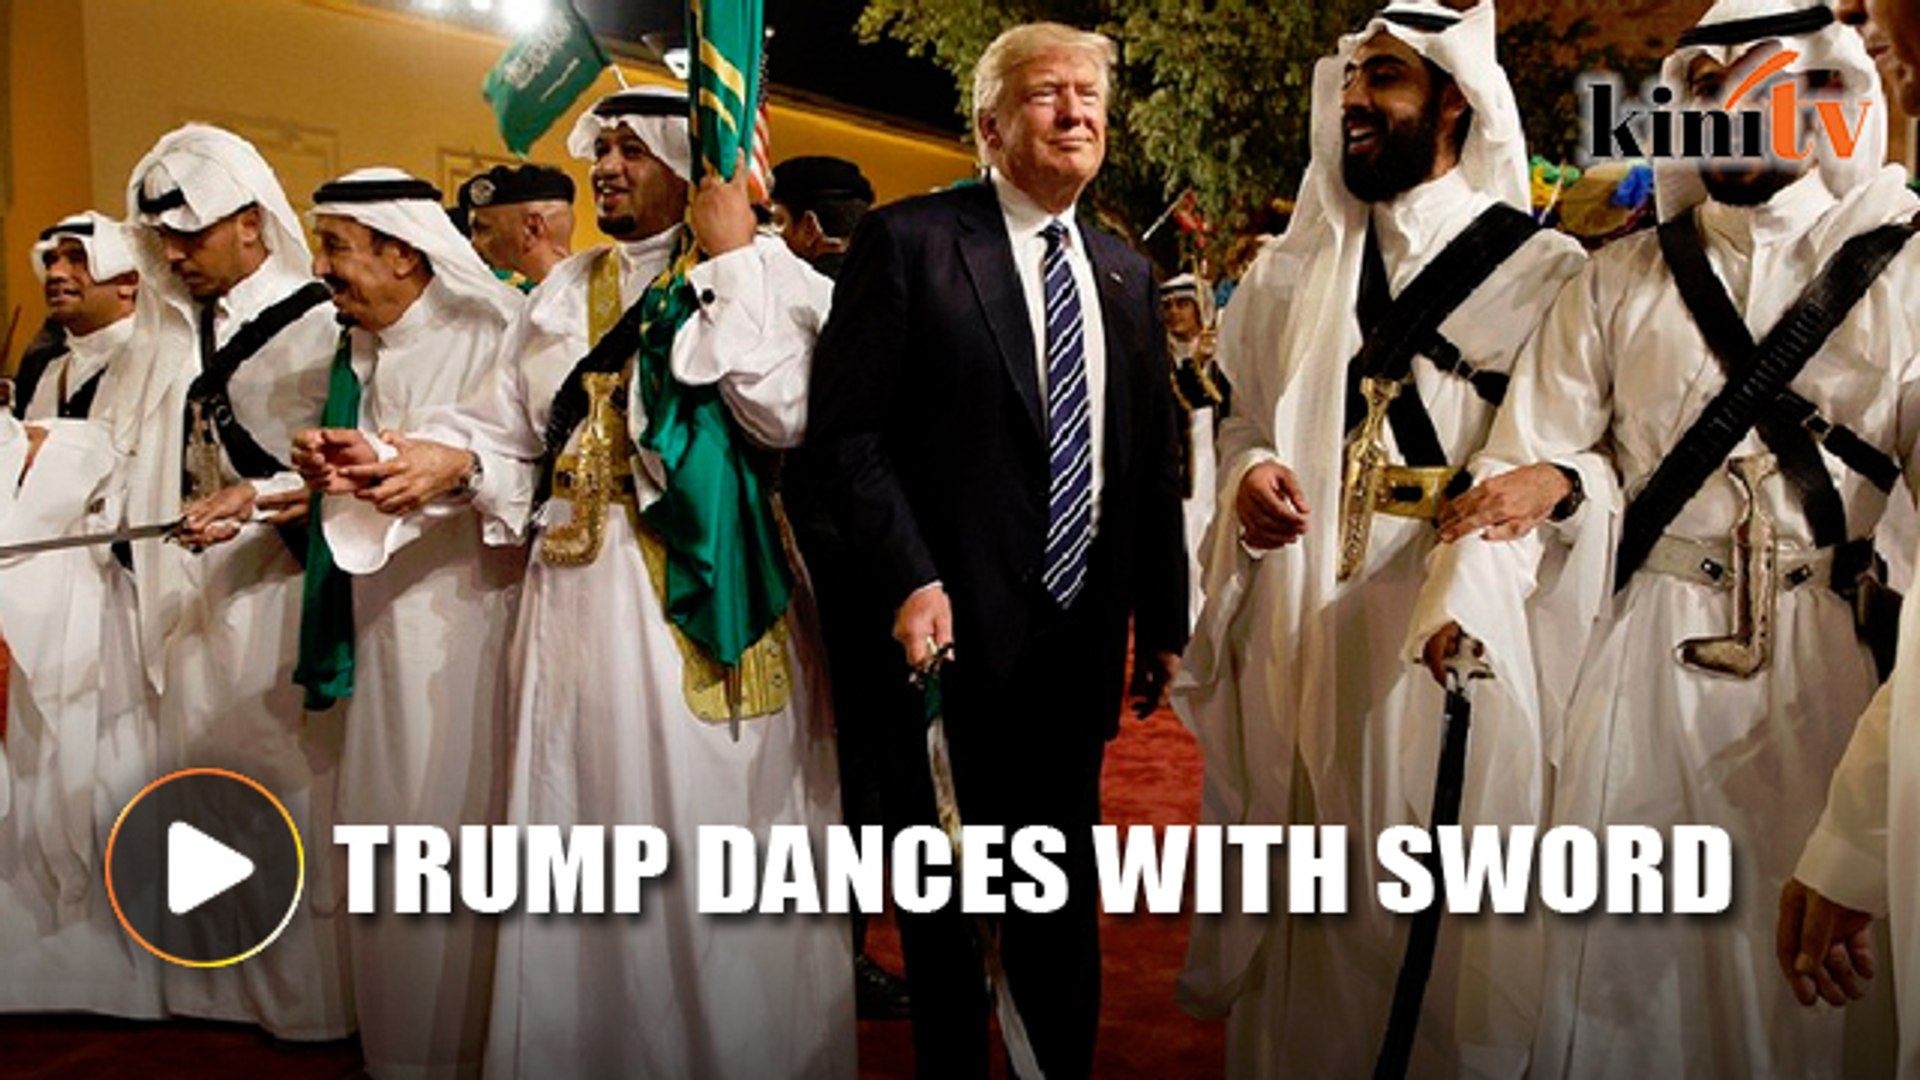 Trump takes part in Saudi 'war dance'